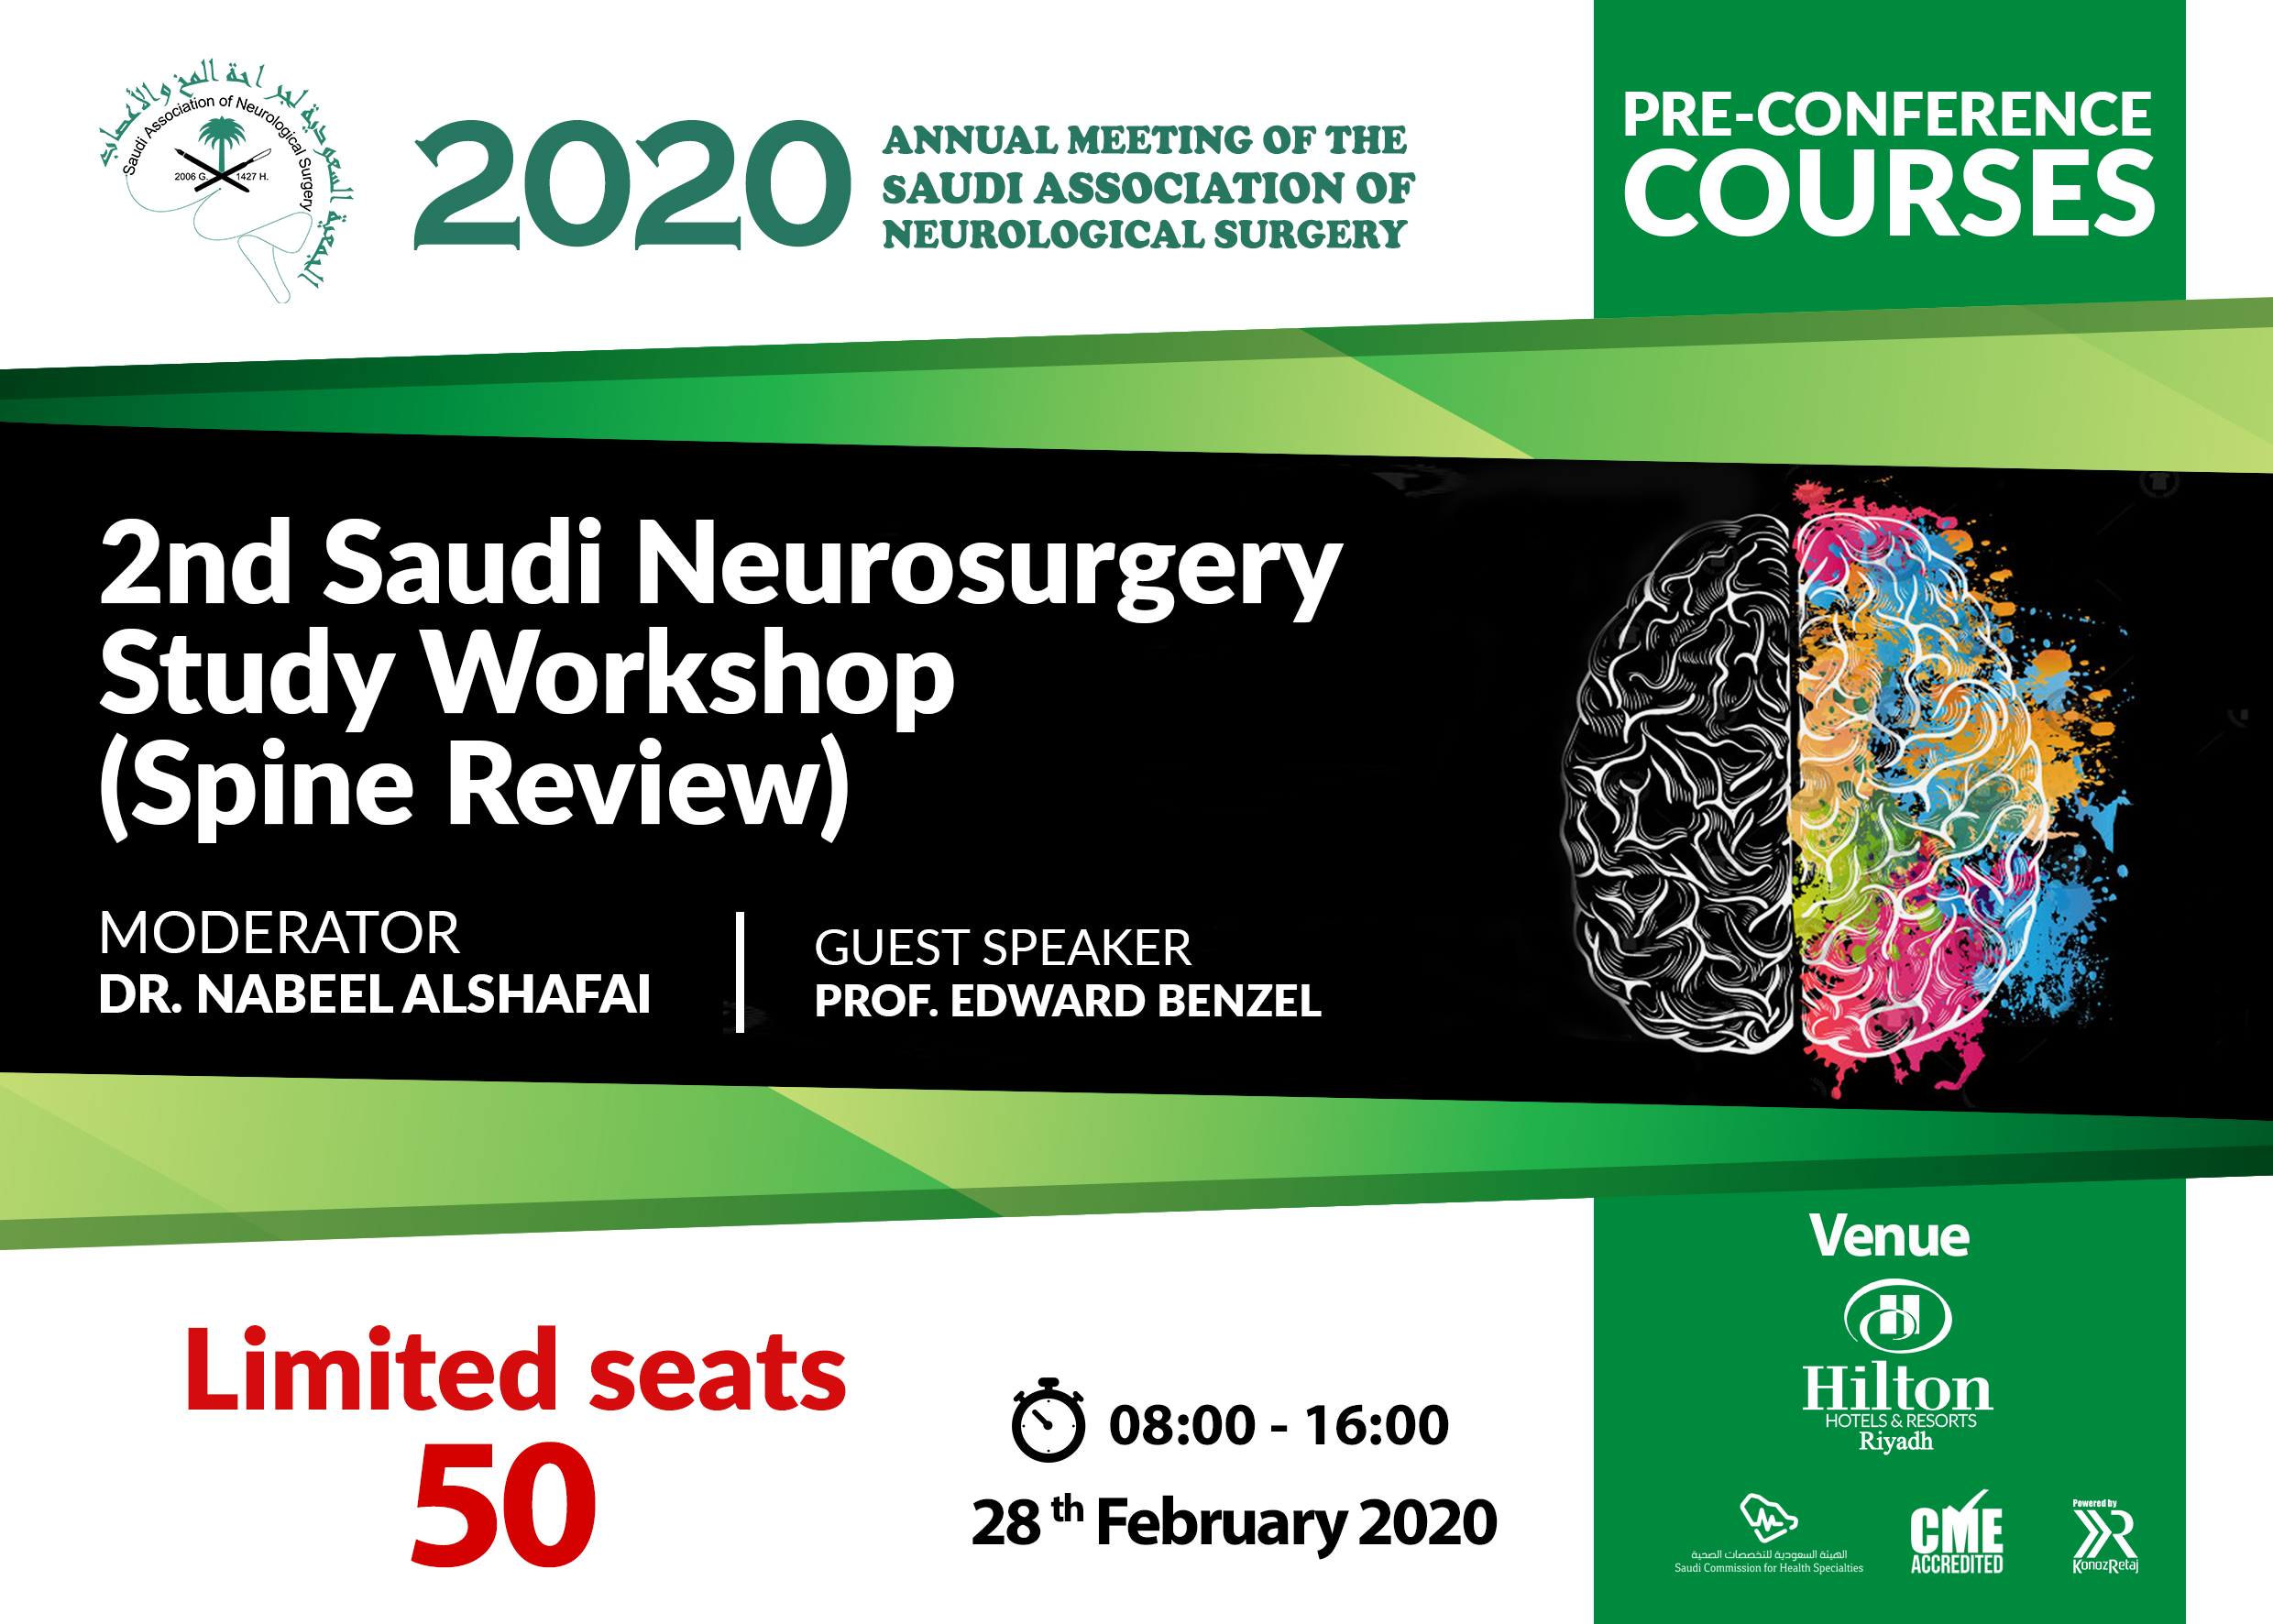 SANS 2020 spine review course